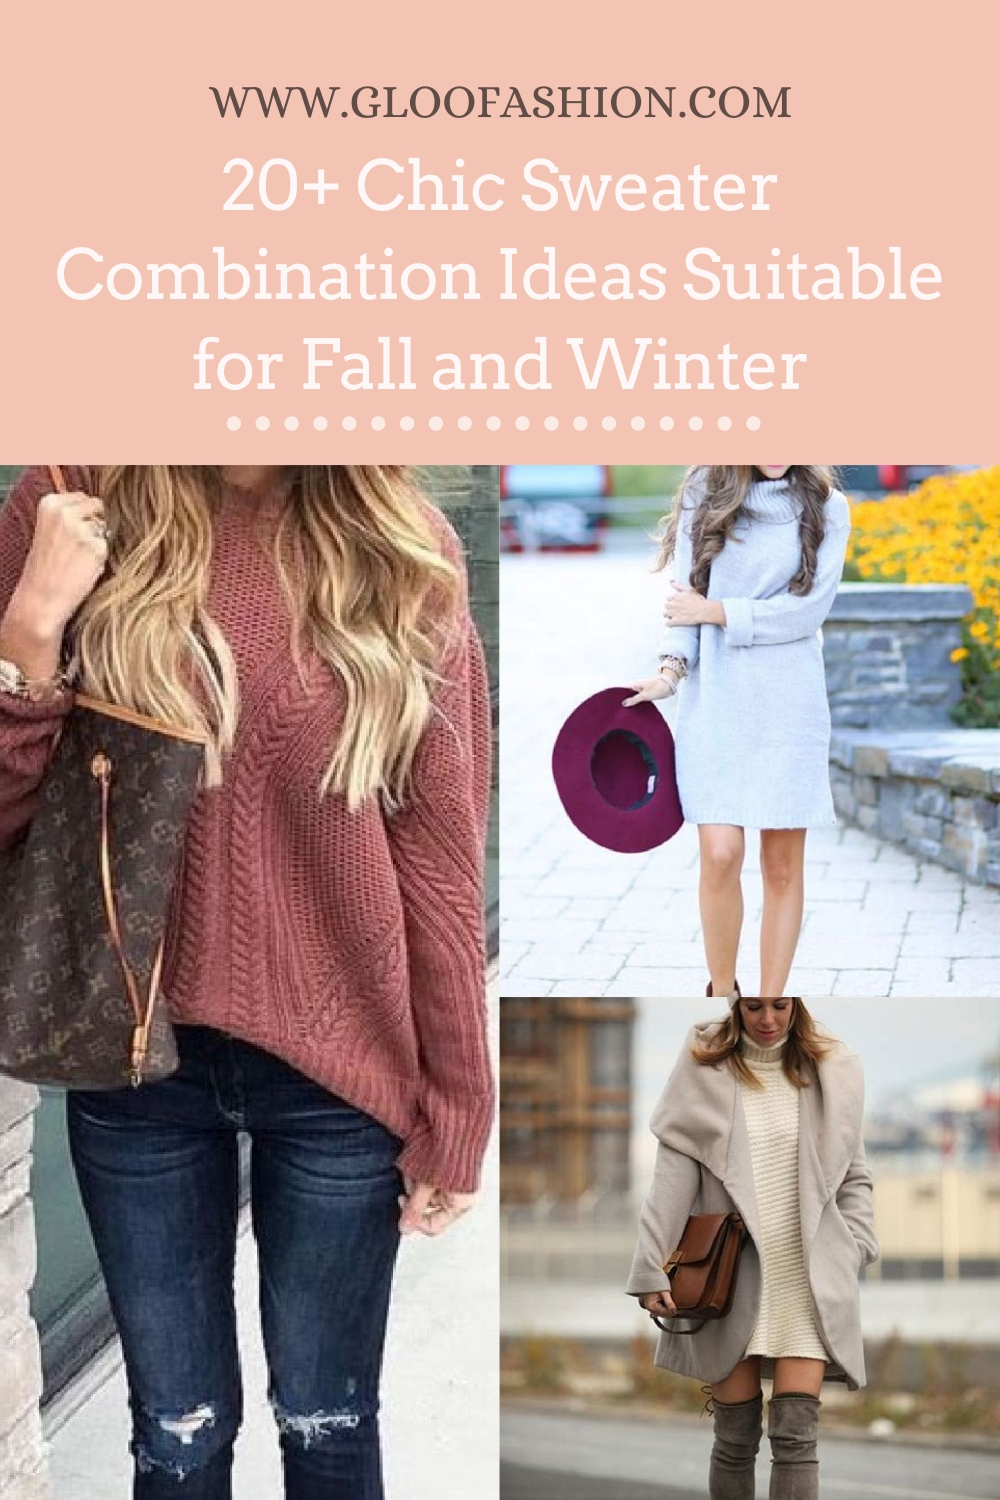 20+ Chic Sweater Combination Ideas Suitable For Fall And Winter